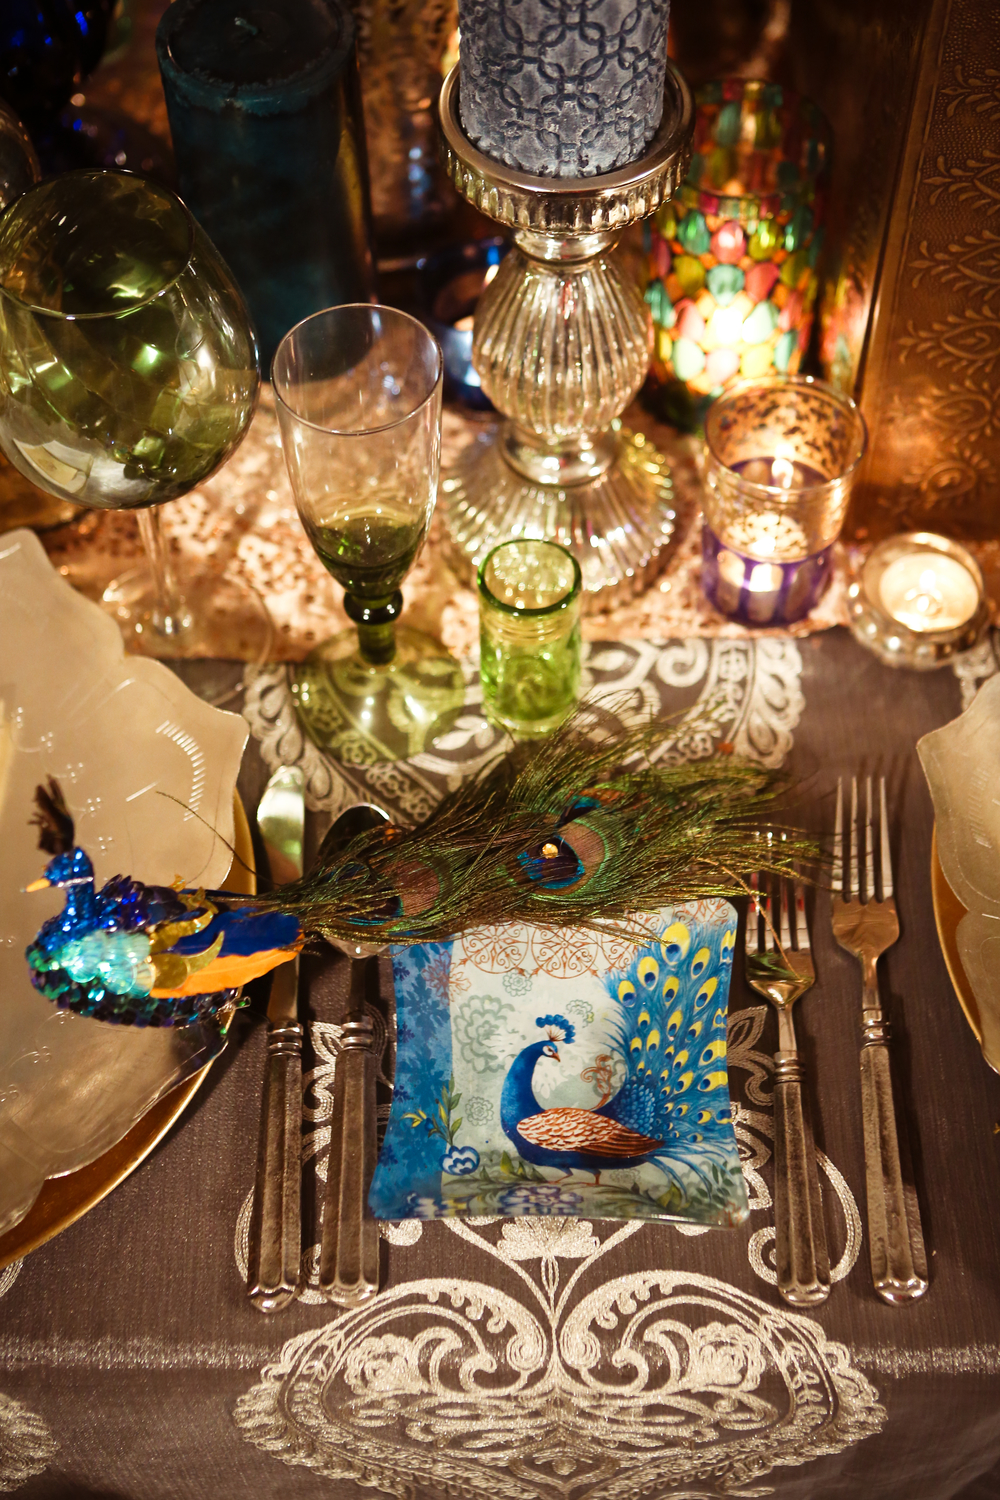 NudratOwensPhotography_AnaisEvents_peacocktable-top20 - 20.jpg